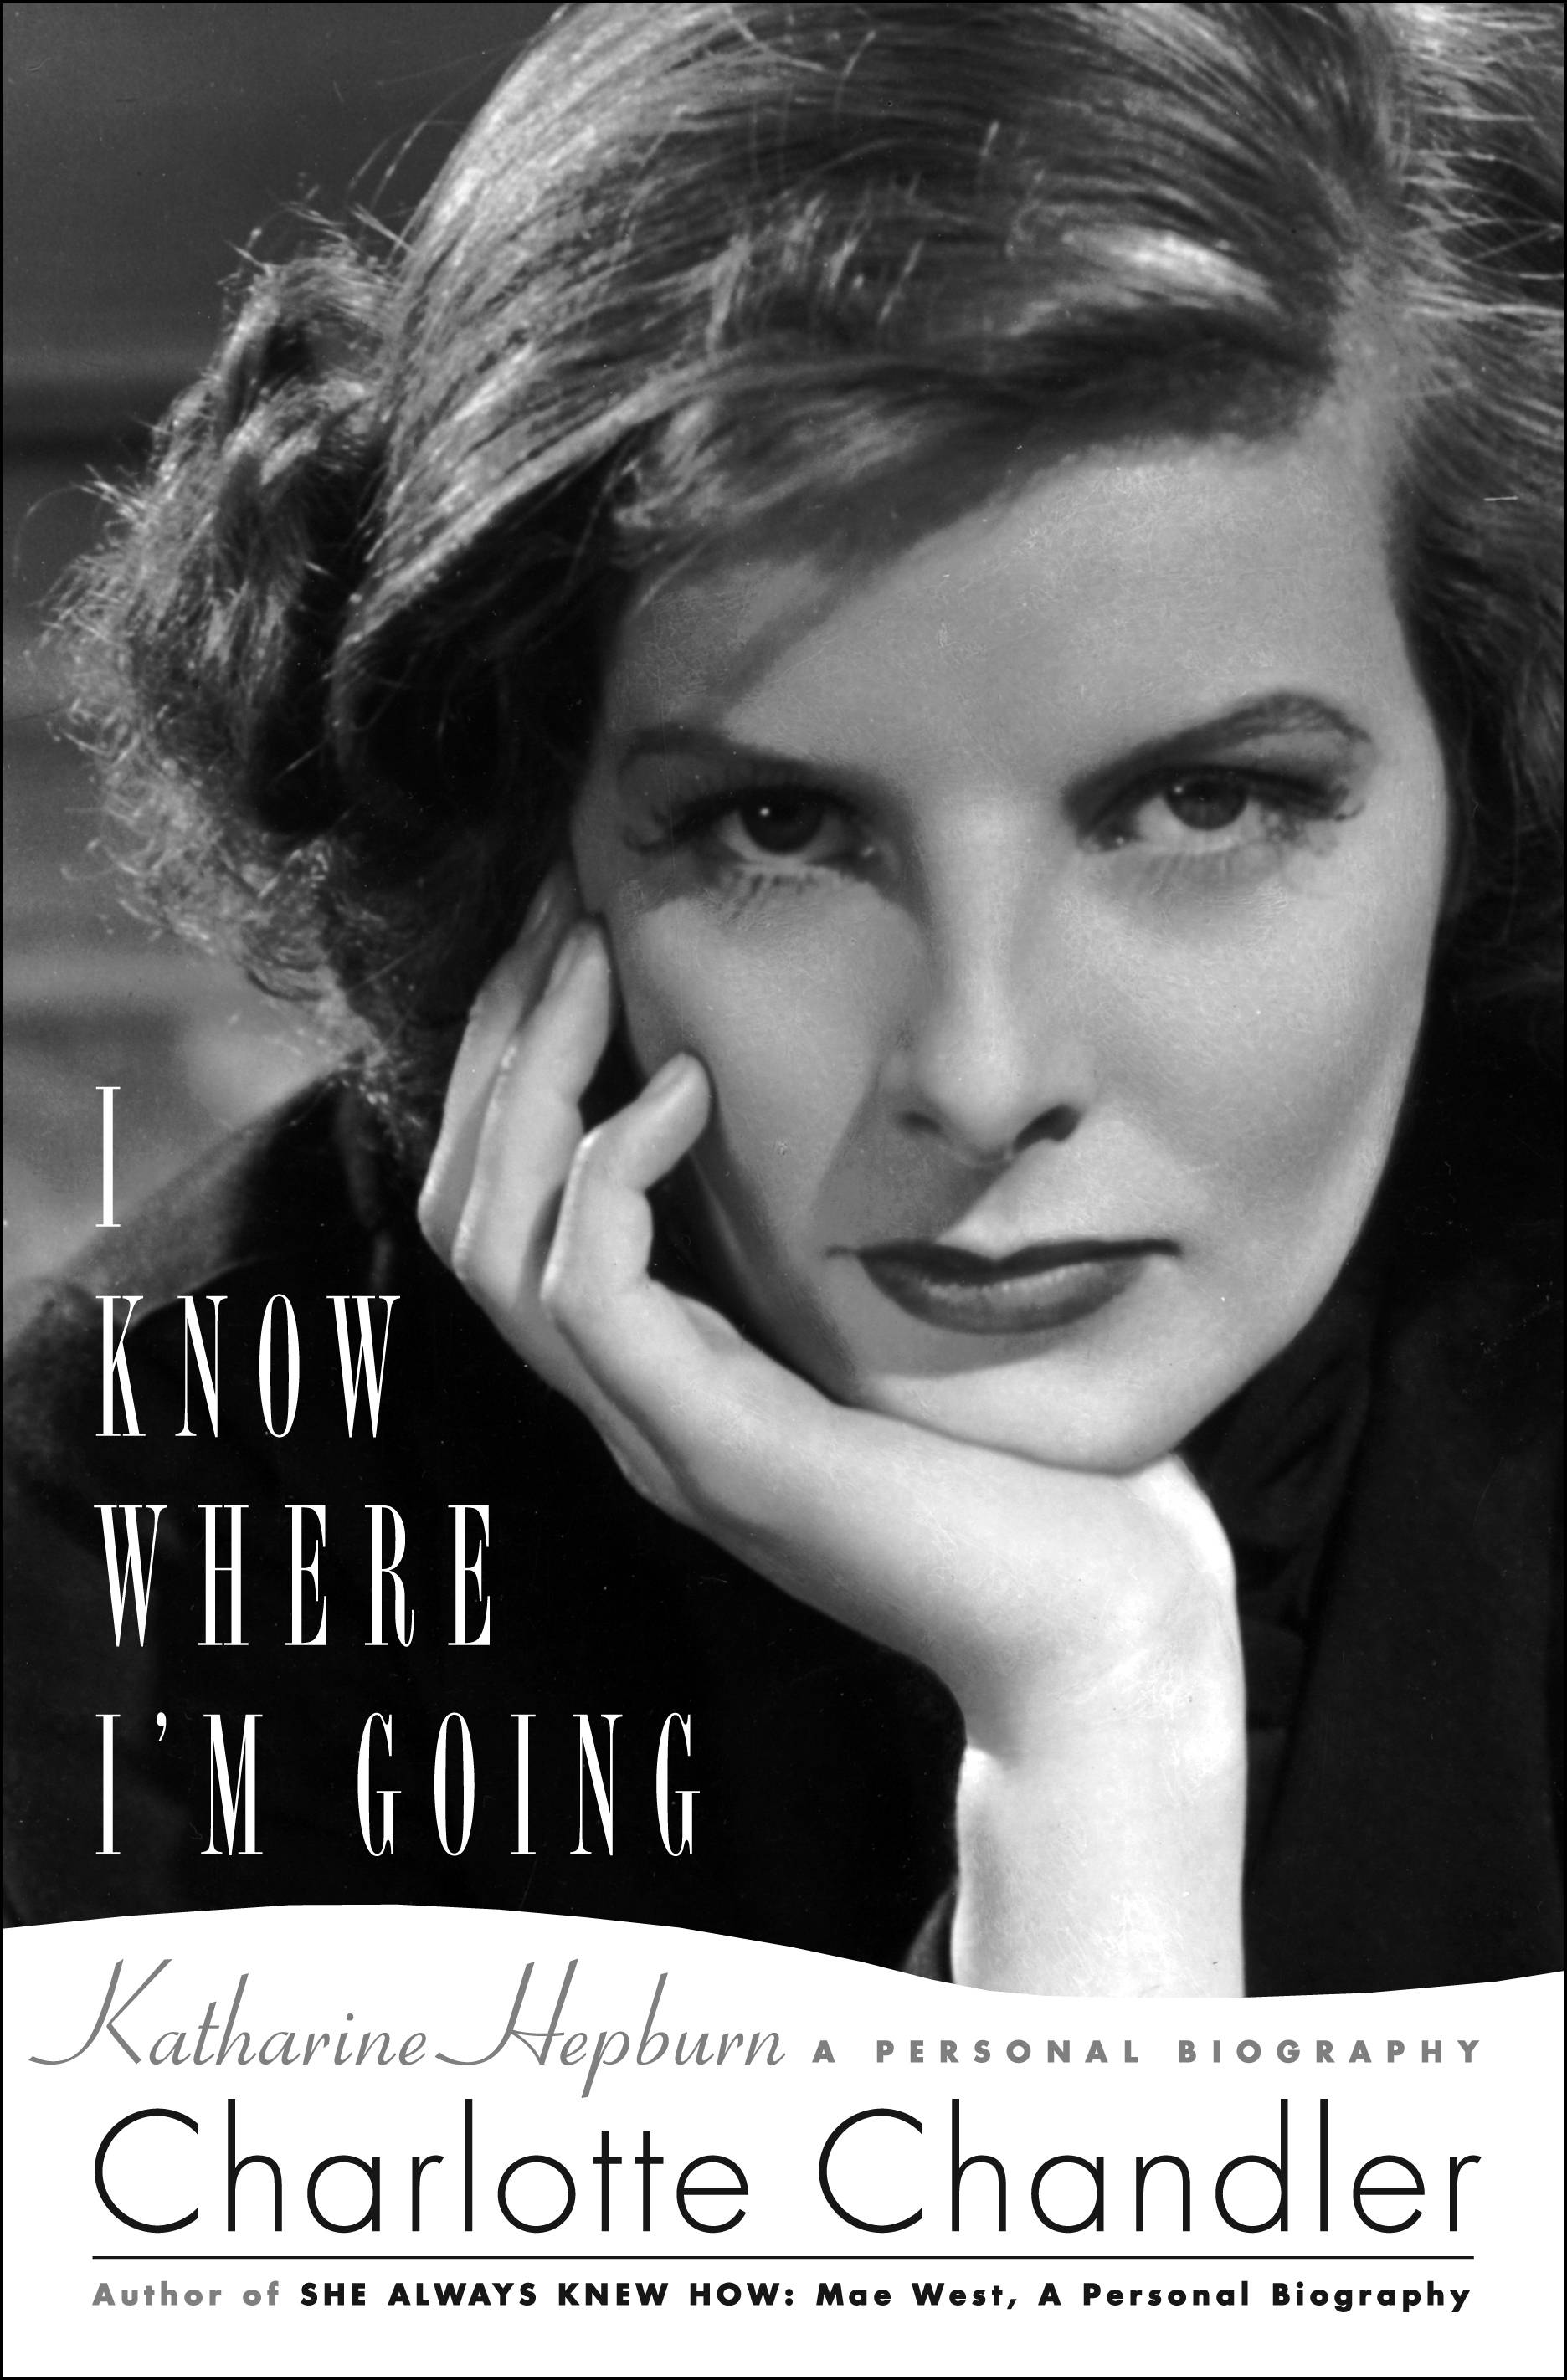 """I Know Where I'm Going: Katharine Hepburn, A Personal Biography"" (Simon & Schuster, 368 pages, $26), by Charlotte Chandler"